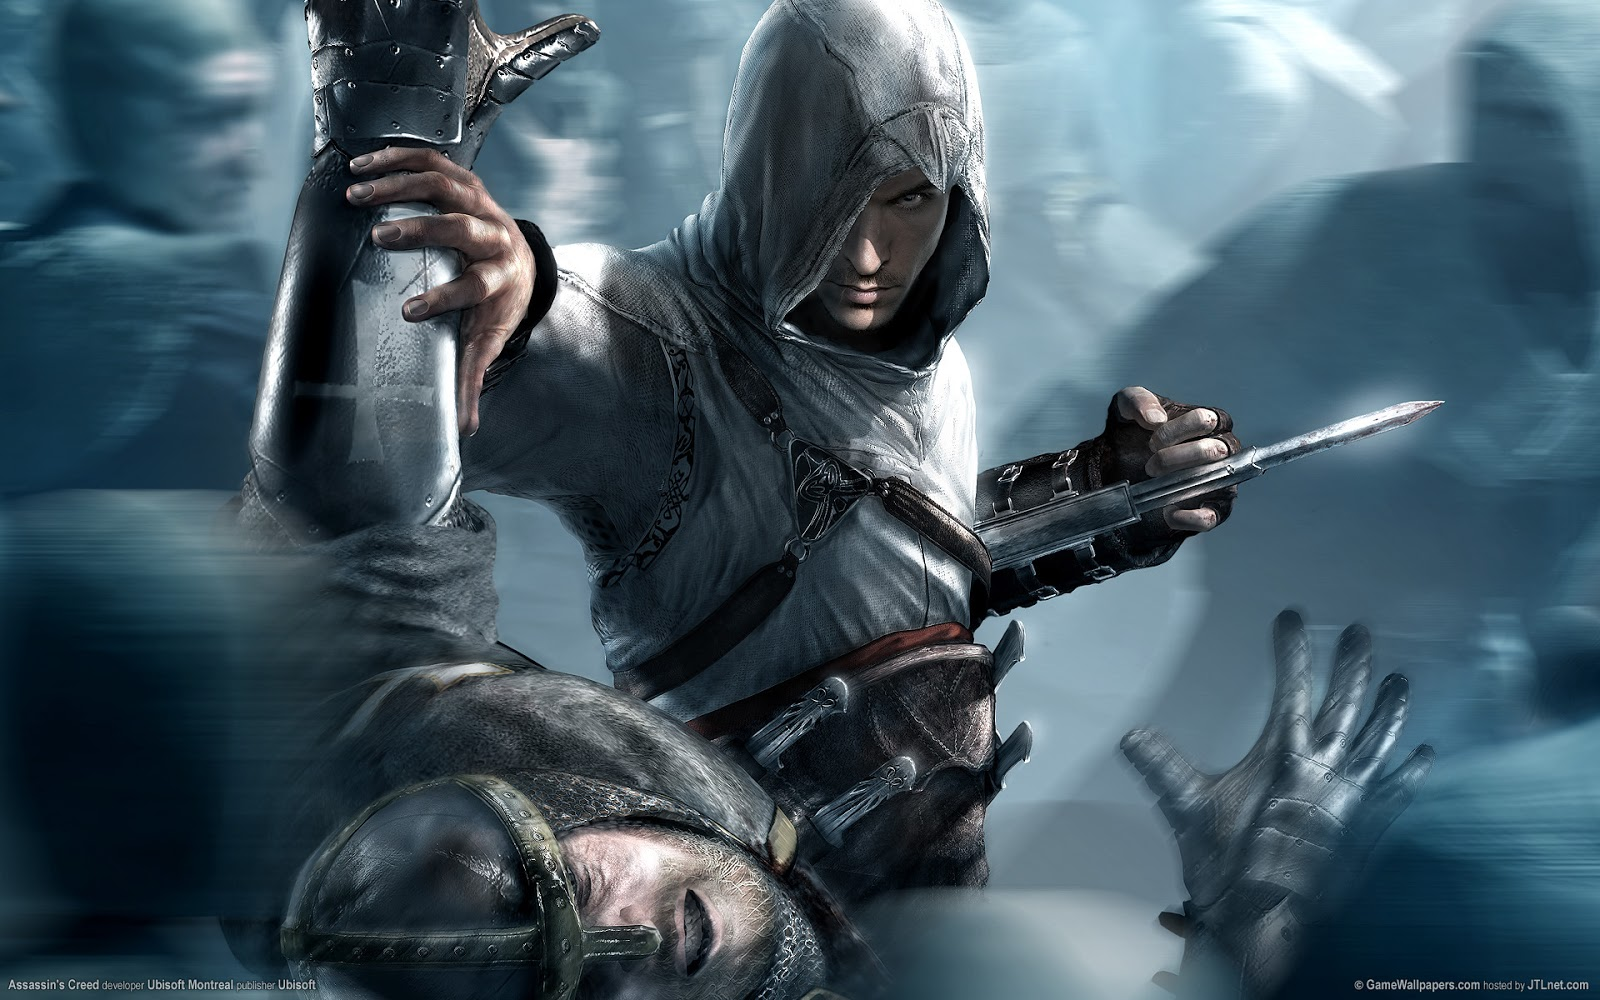 Desktop Hd Wallpapers Assassin S Creed Games Wallpapers Hd